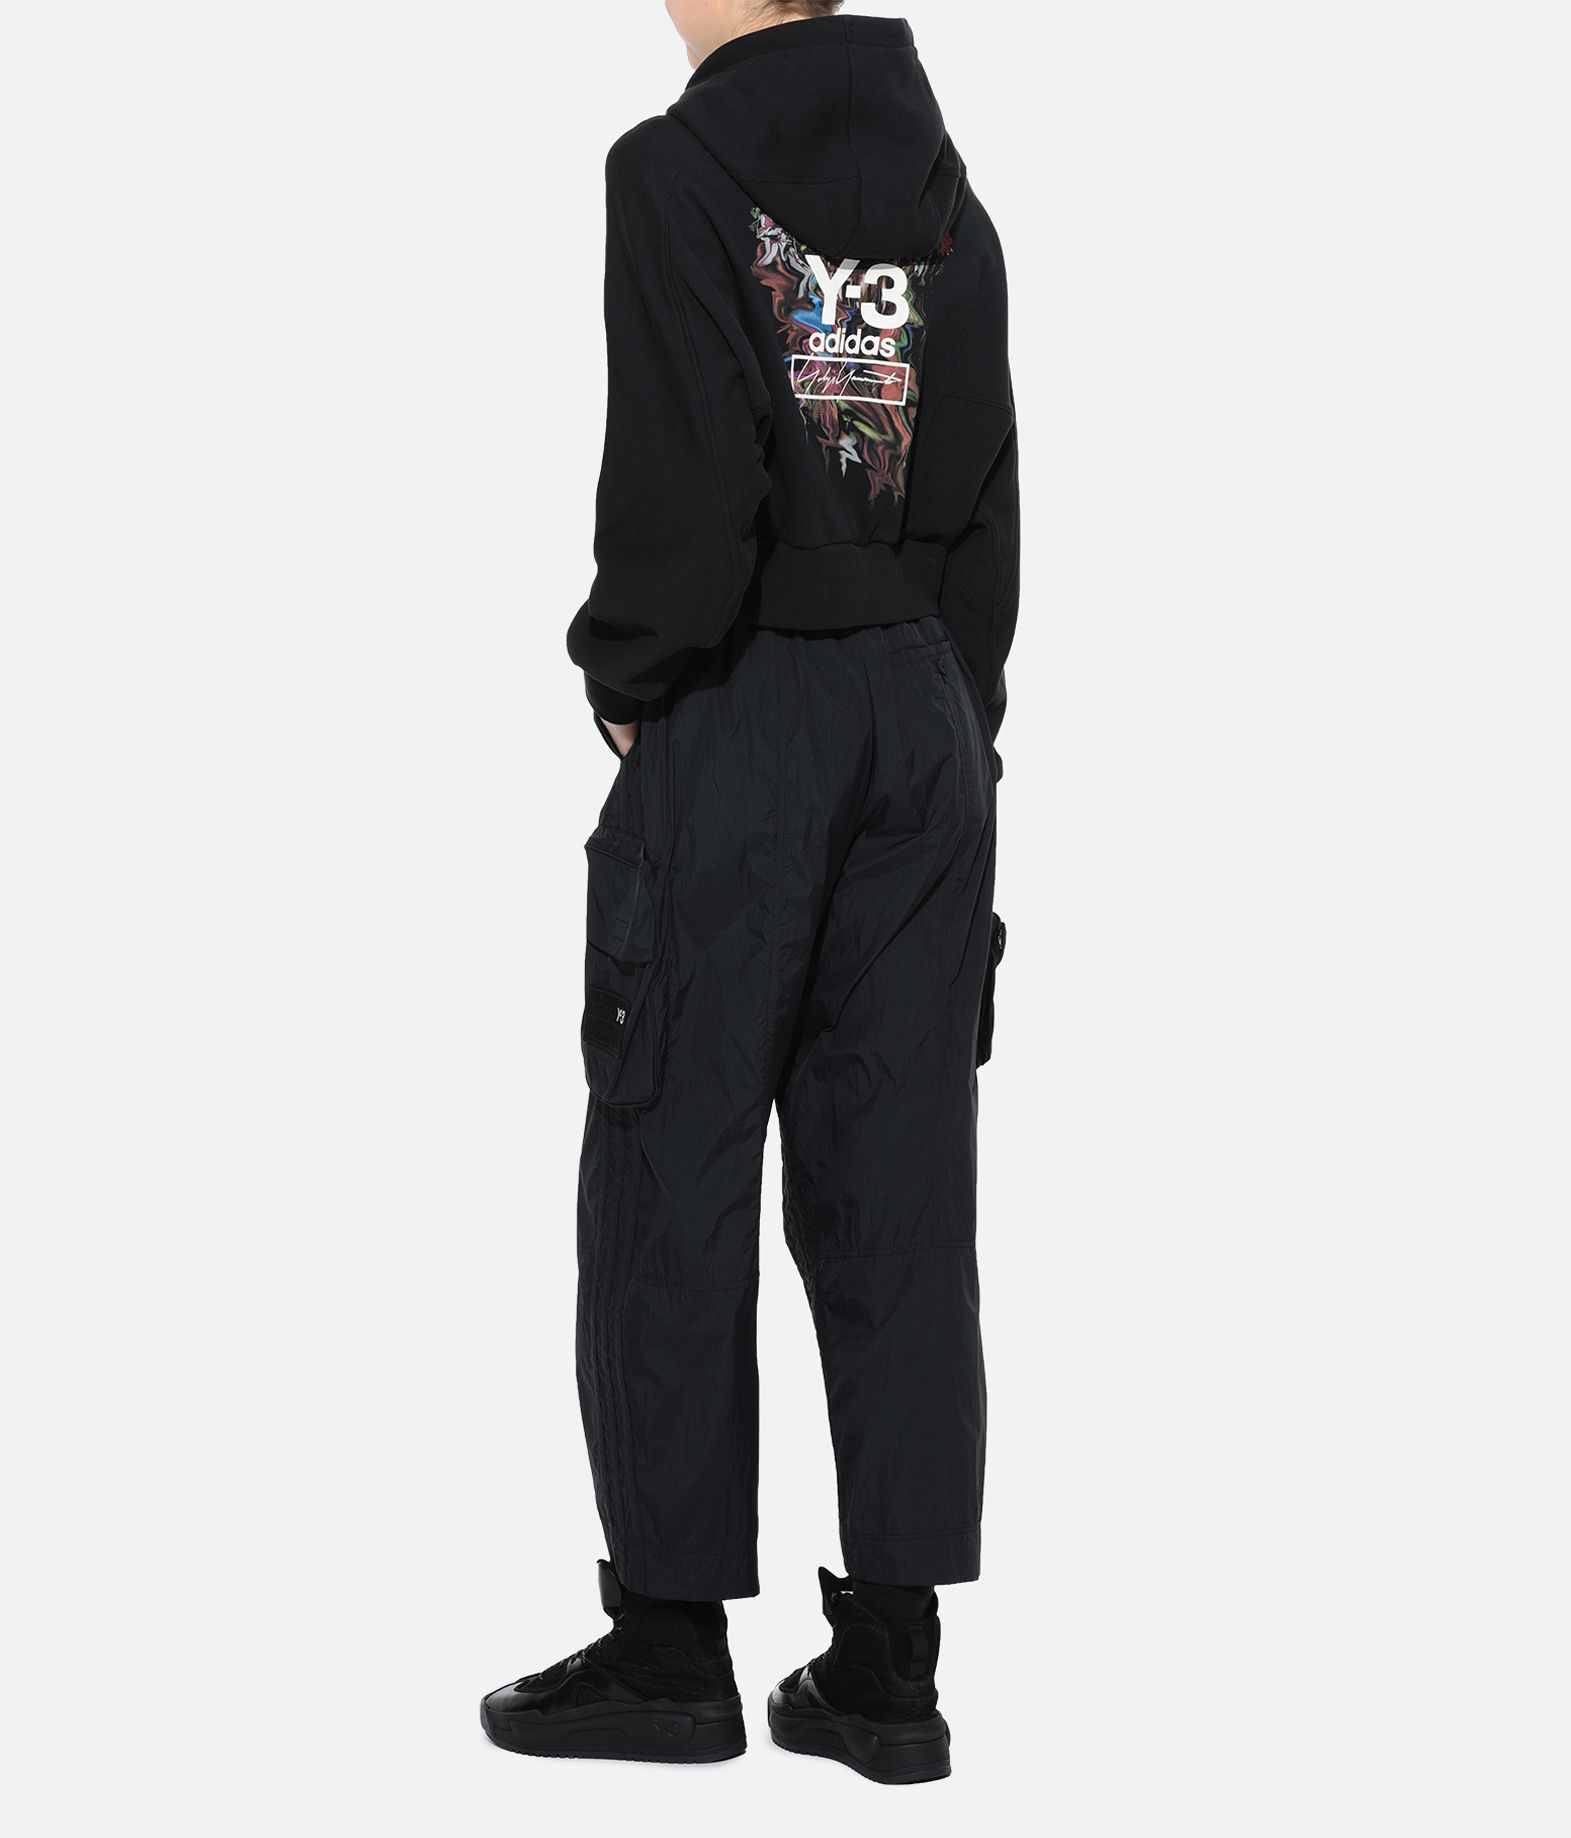 Y-3 Y-3 Toketa Print Cropped Hoodie Hooded sweatshirt Woman a